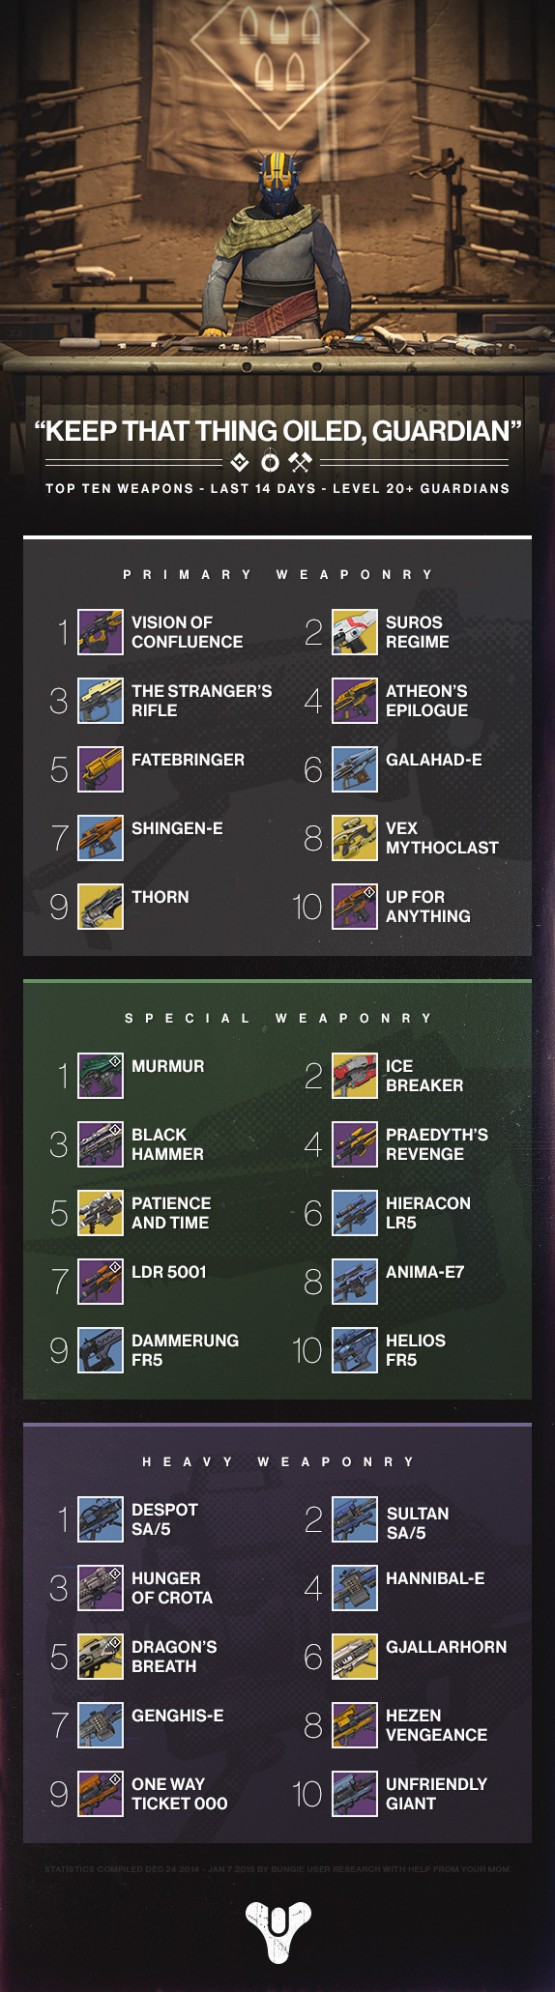 destinytop10weaponsinfographic